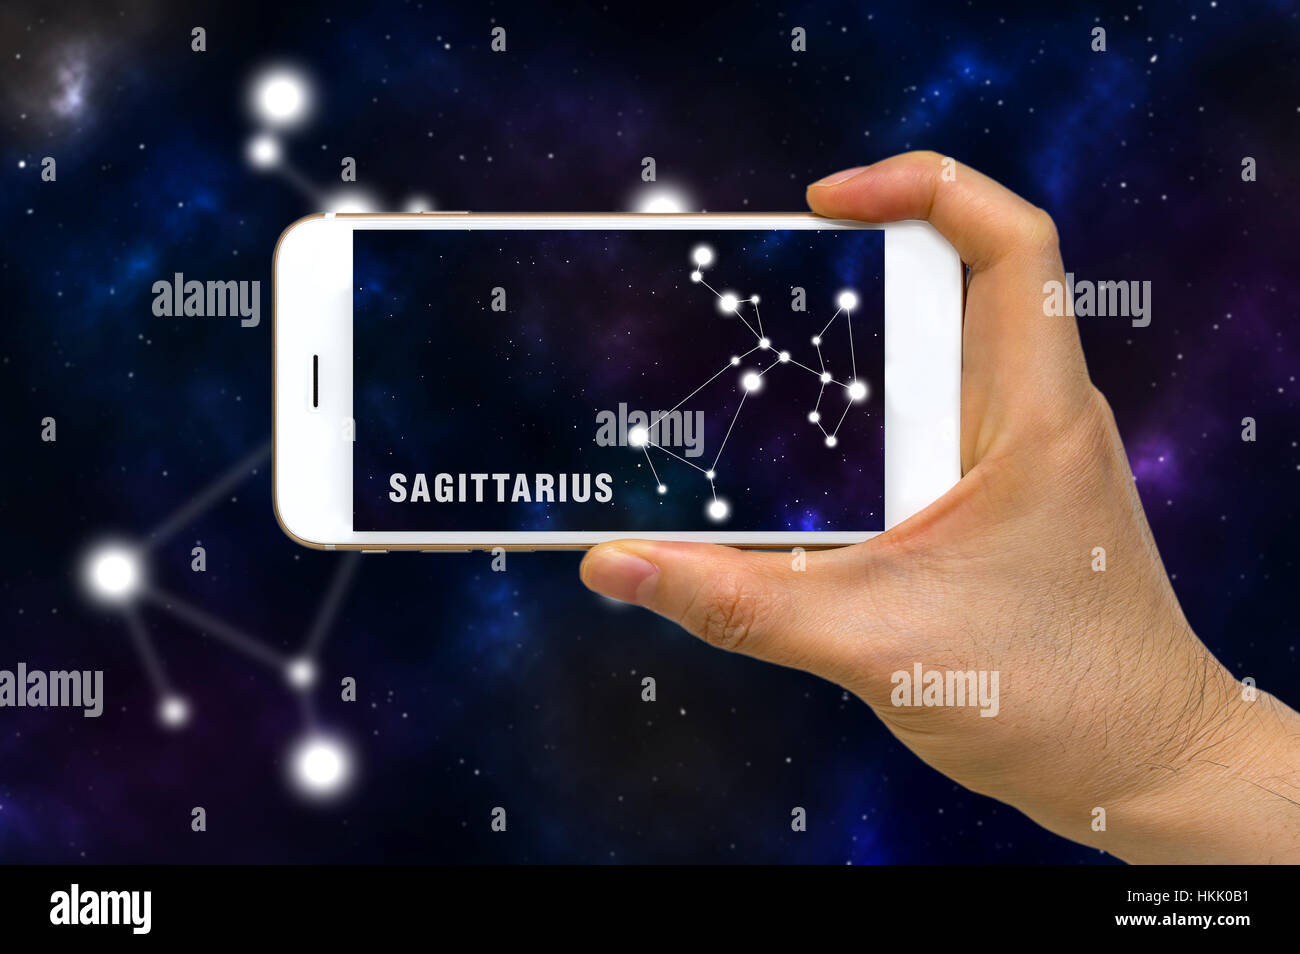 Concept of augmented reality, AR, of Sagittarius zodiac constellation app on smartphone. Stock Photo